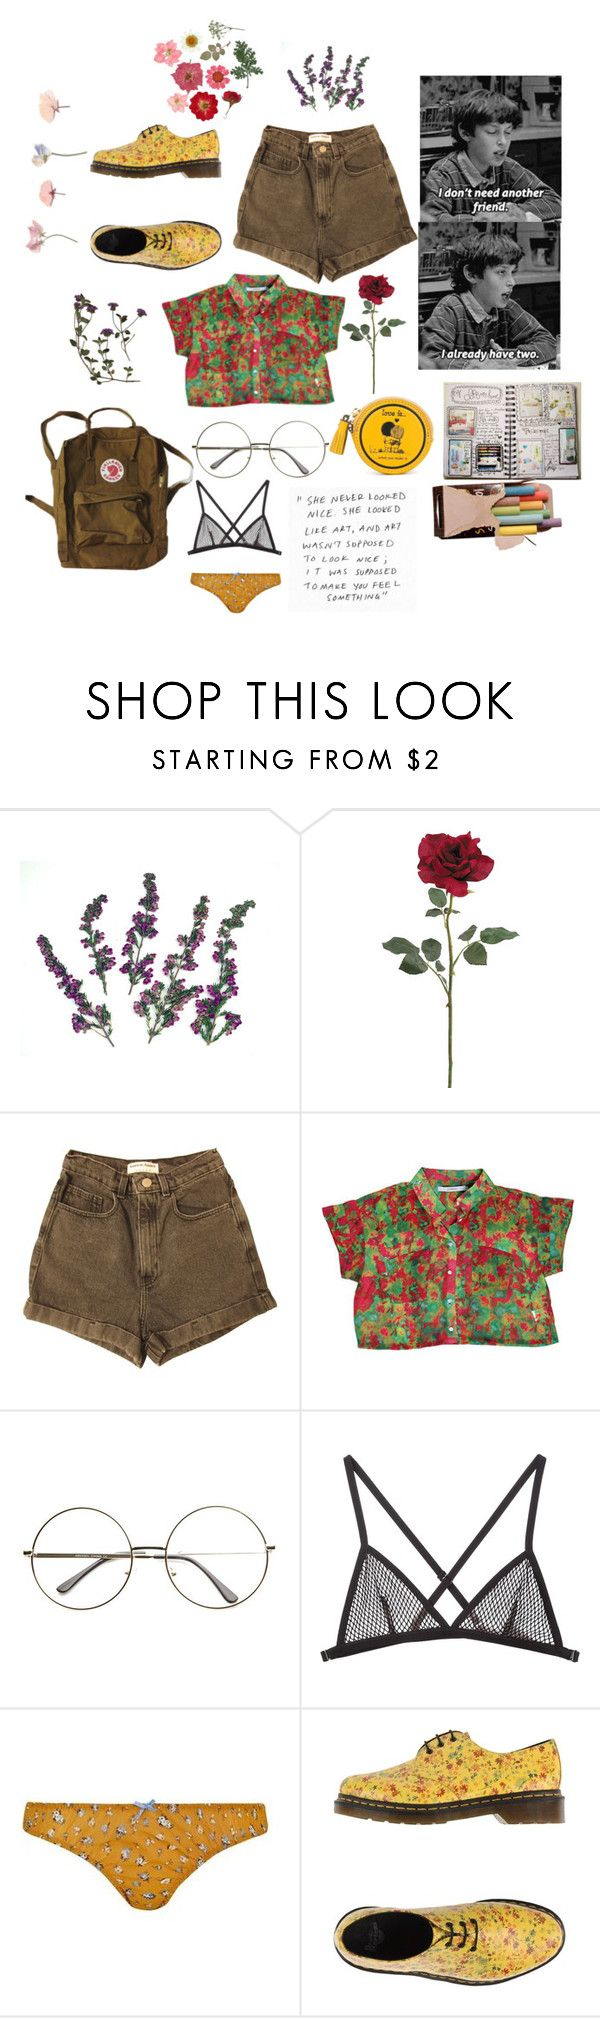 """""""GOD! She's such an a Art Hoe"""" by alien-fromearth on Polyvore featuring American Apparel, Fleur du Mal, Topshop, Dr. Martens and Anya Hindmarch"""